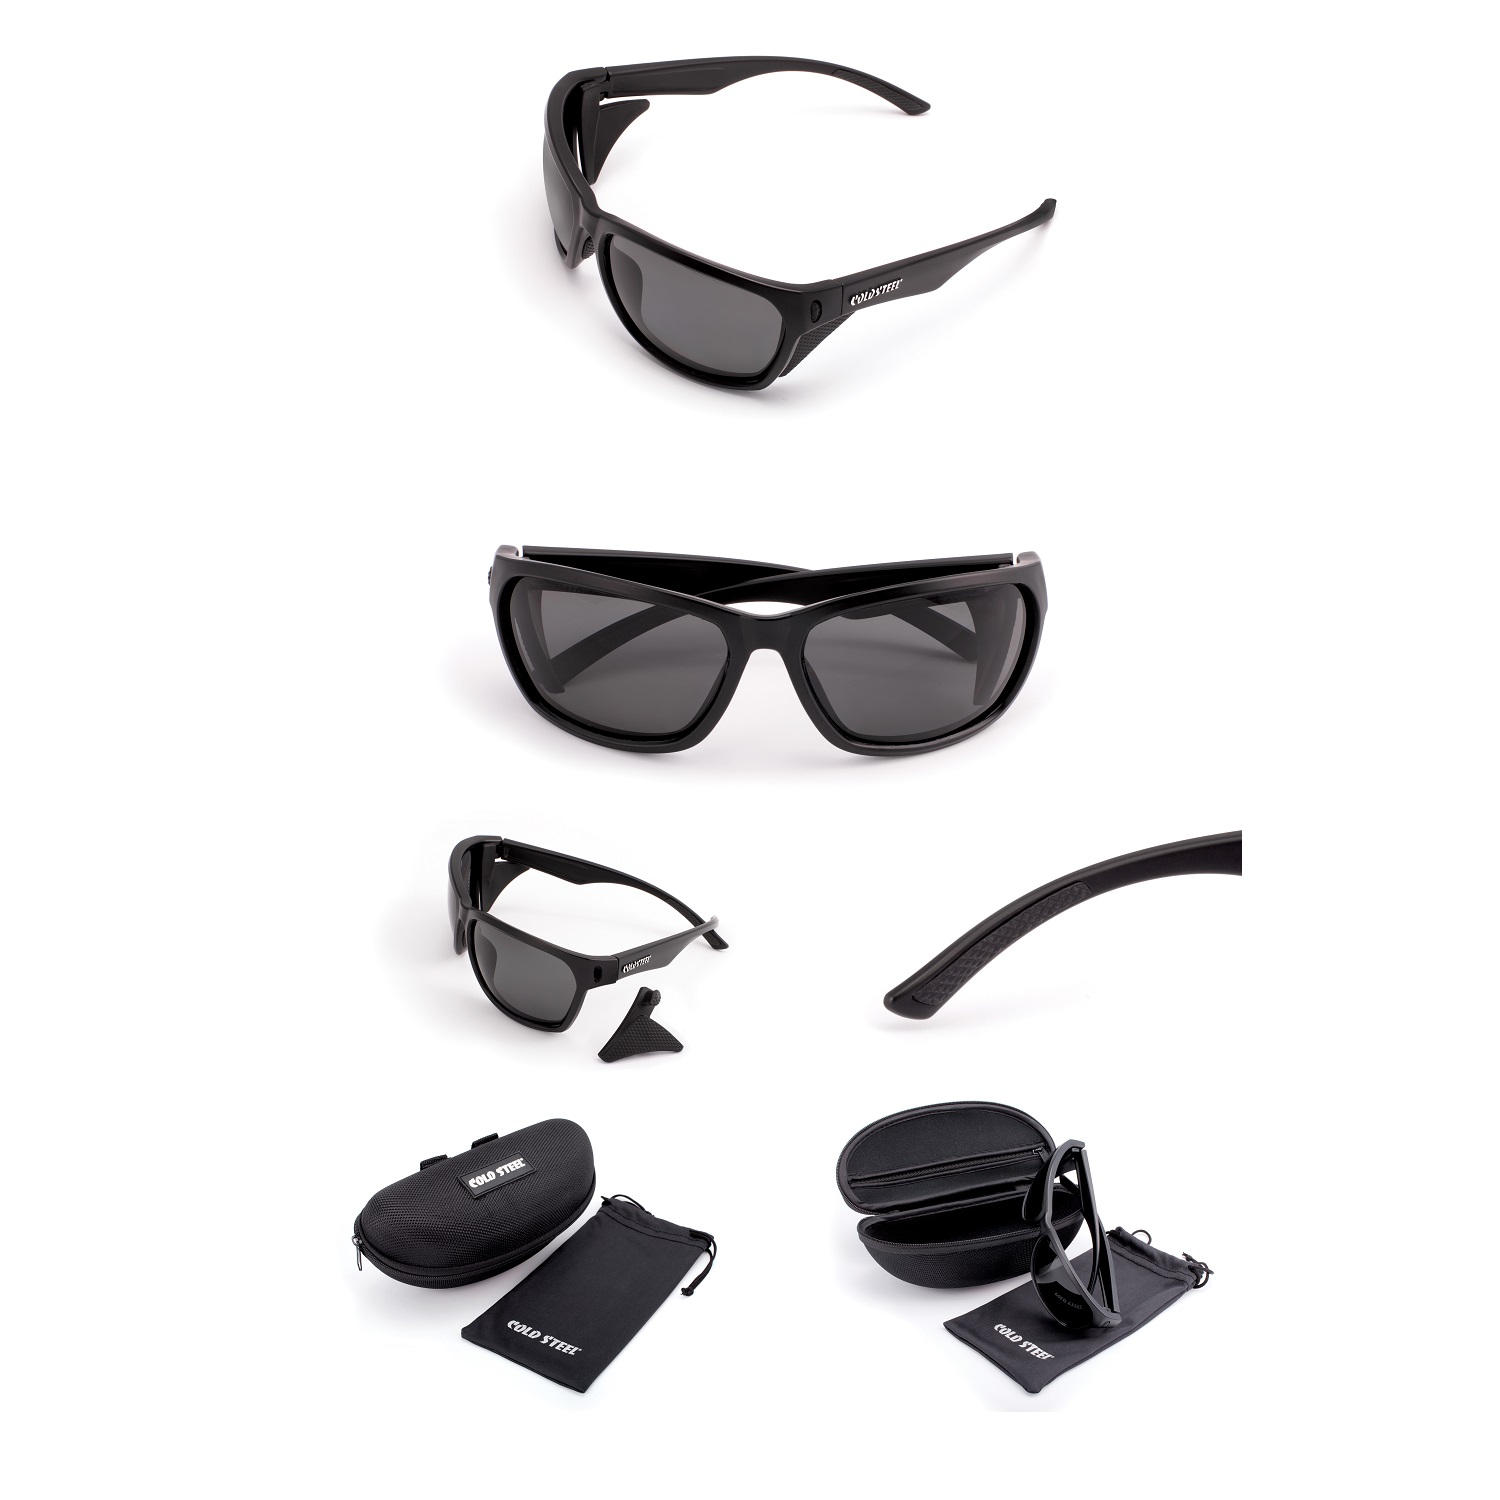 Battle Shades Mark III,Black Matte Frame,Gray Polarized Lens